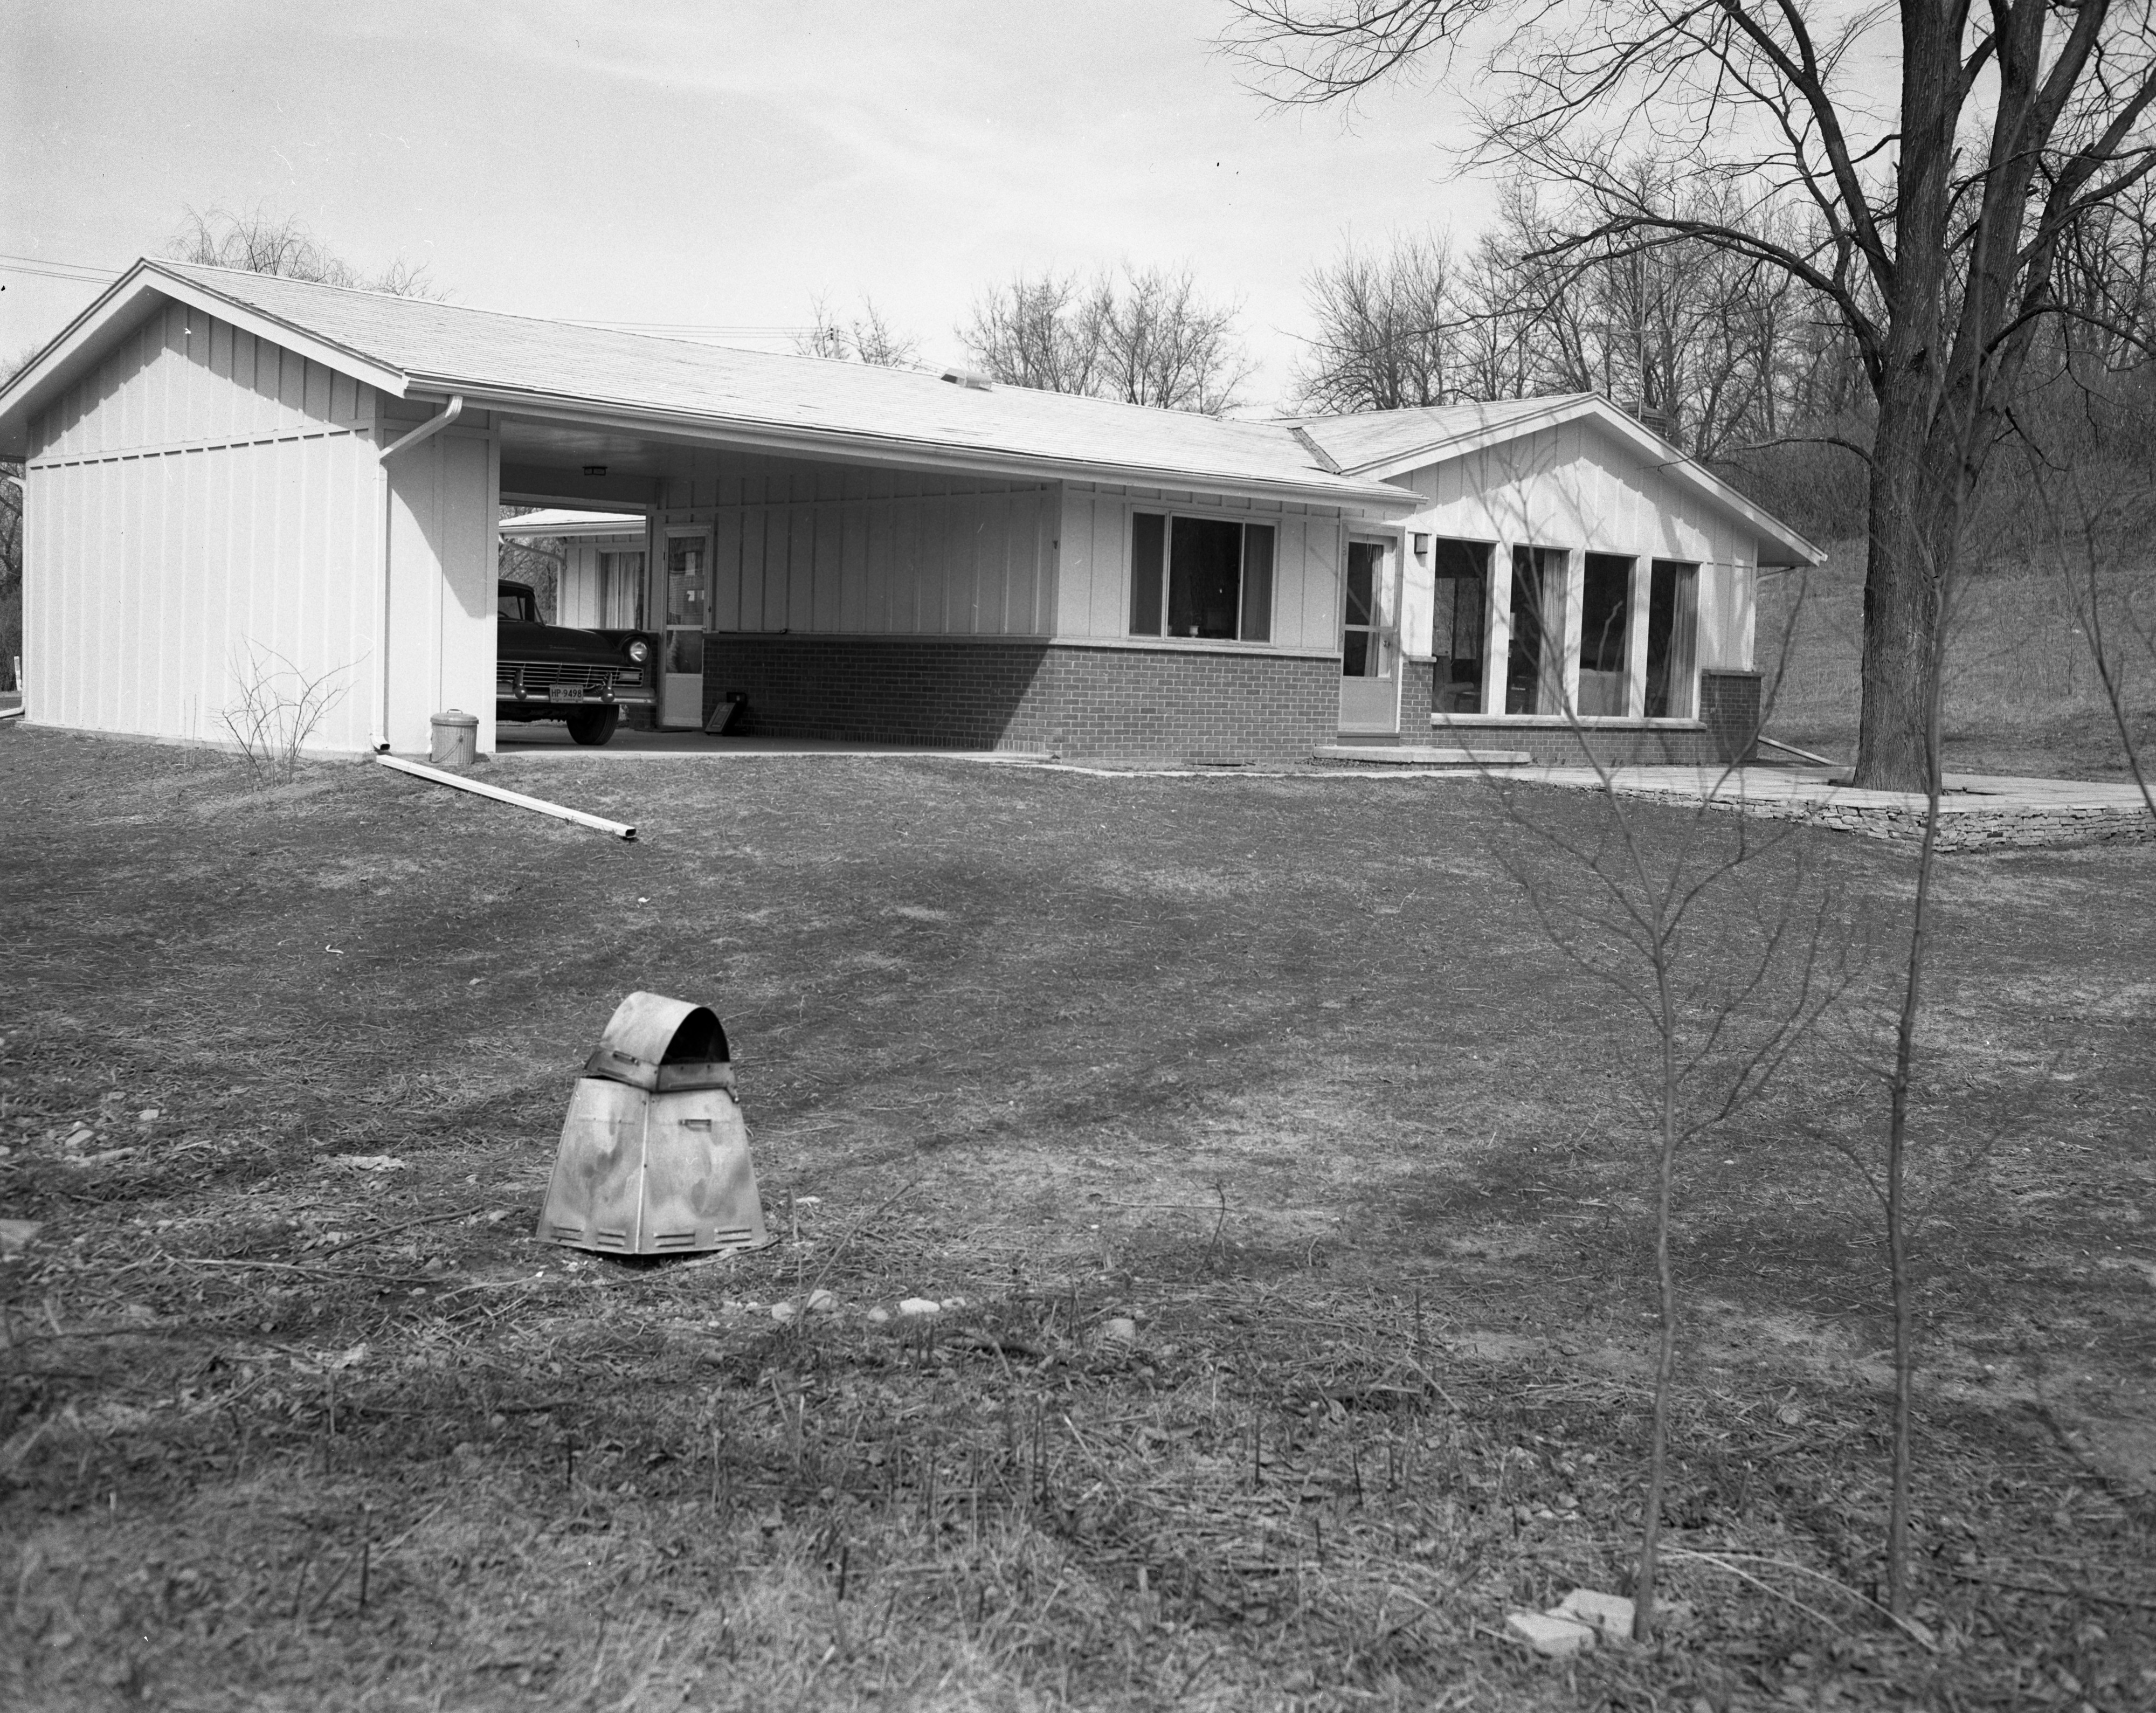 Dama Creal Designs Own Home On Cedar Bend Drive, April 1958 image